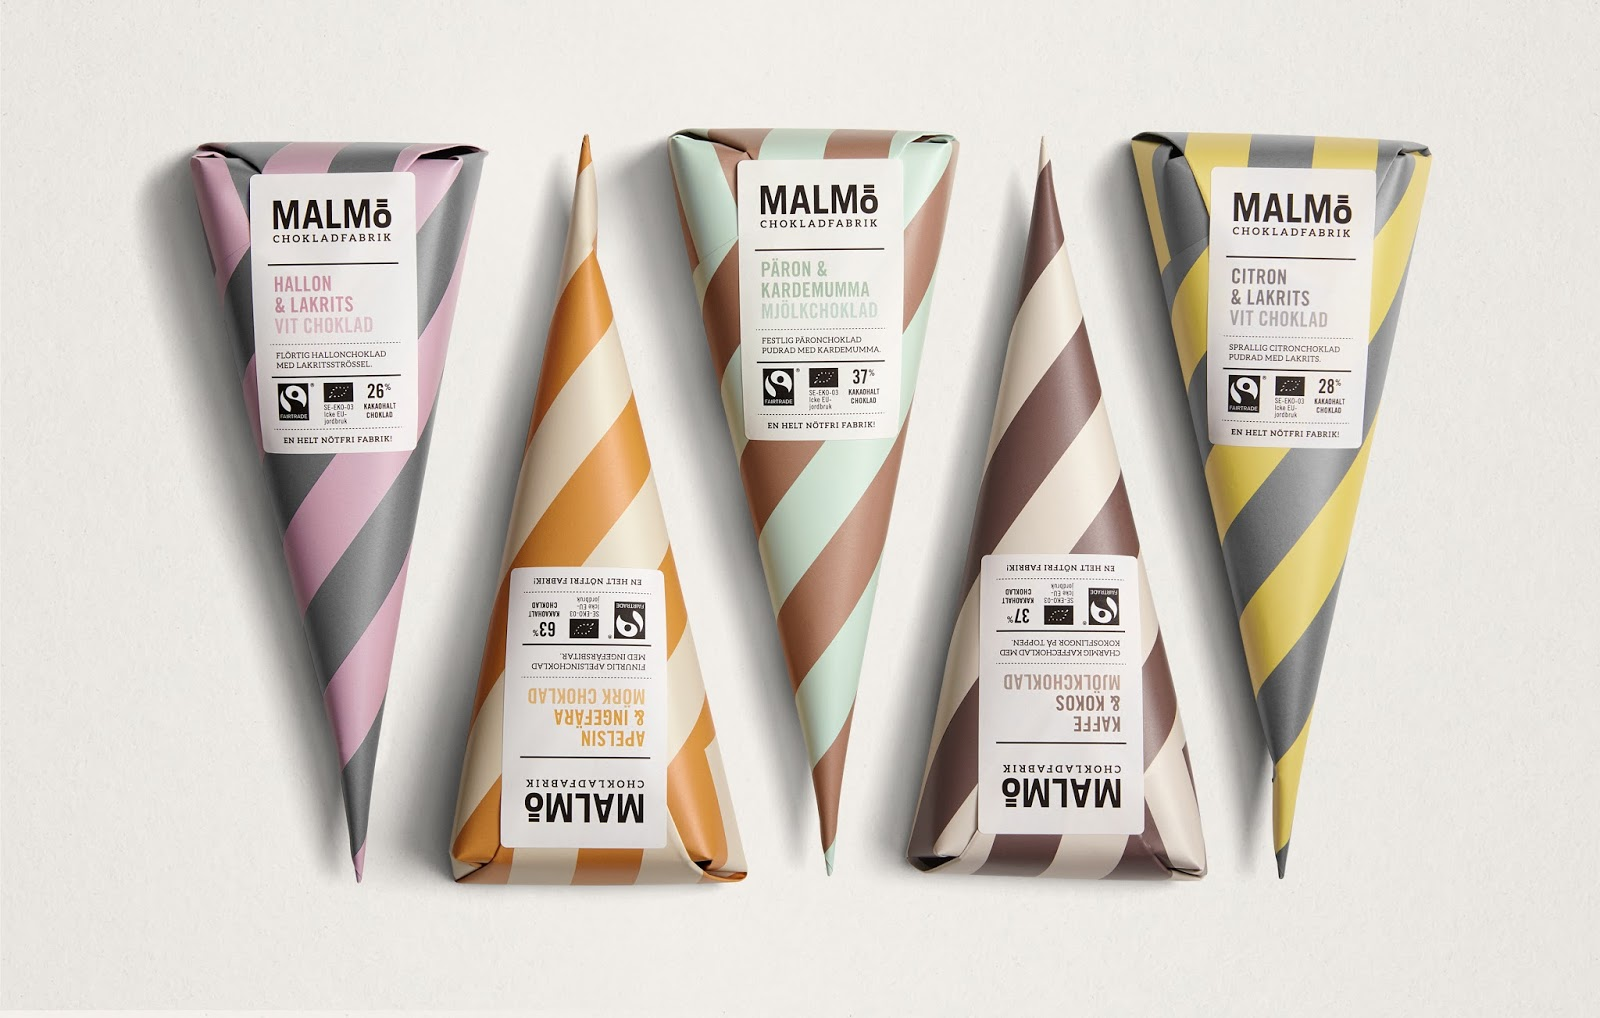 Malm chokladfabrik bars cones on packaging of the world for Design agency pond